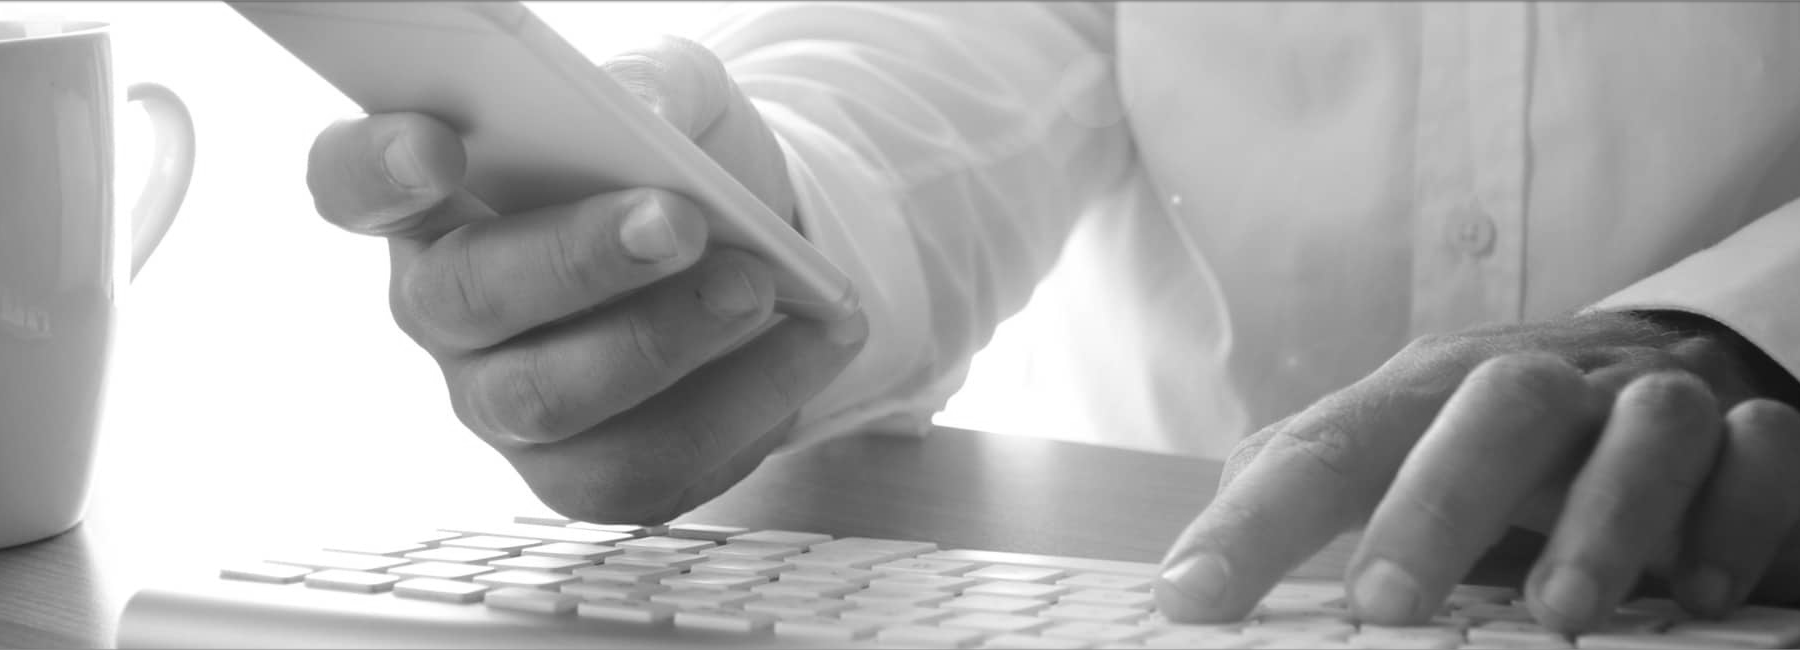 man typing on keyboard with coffee